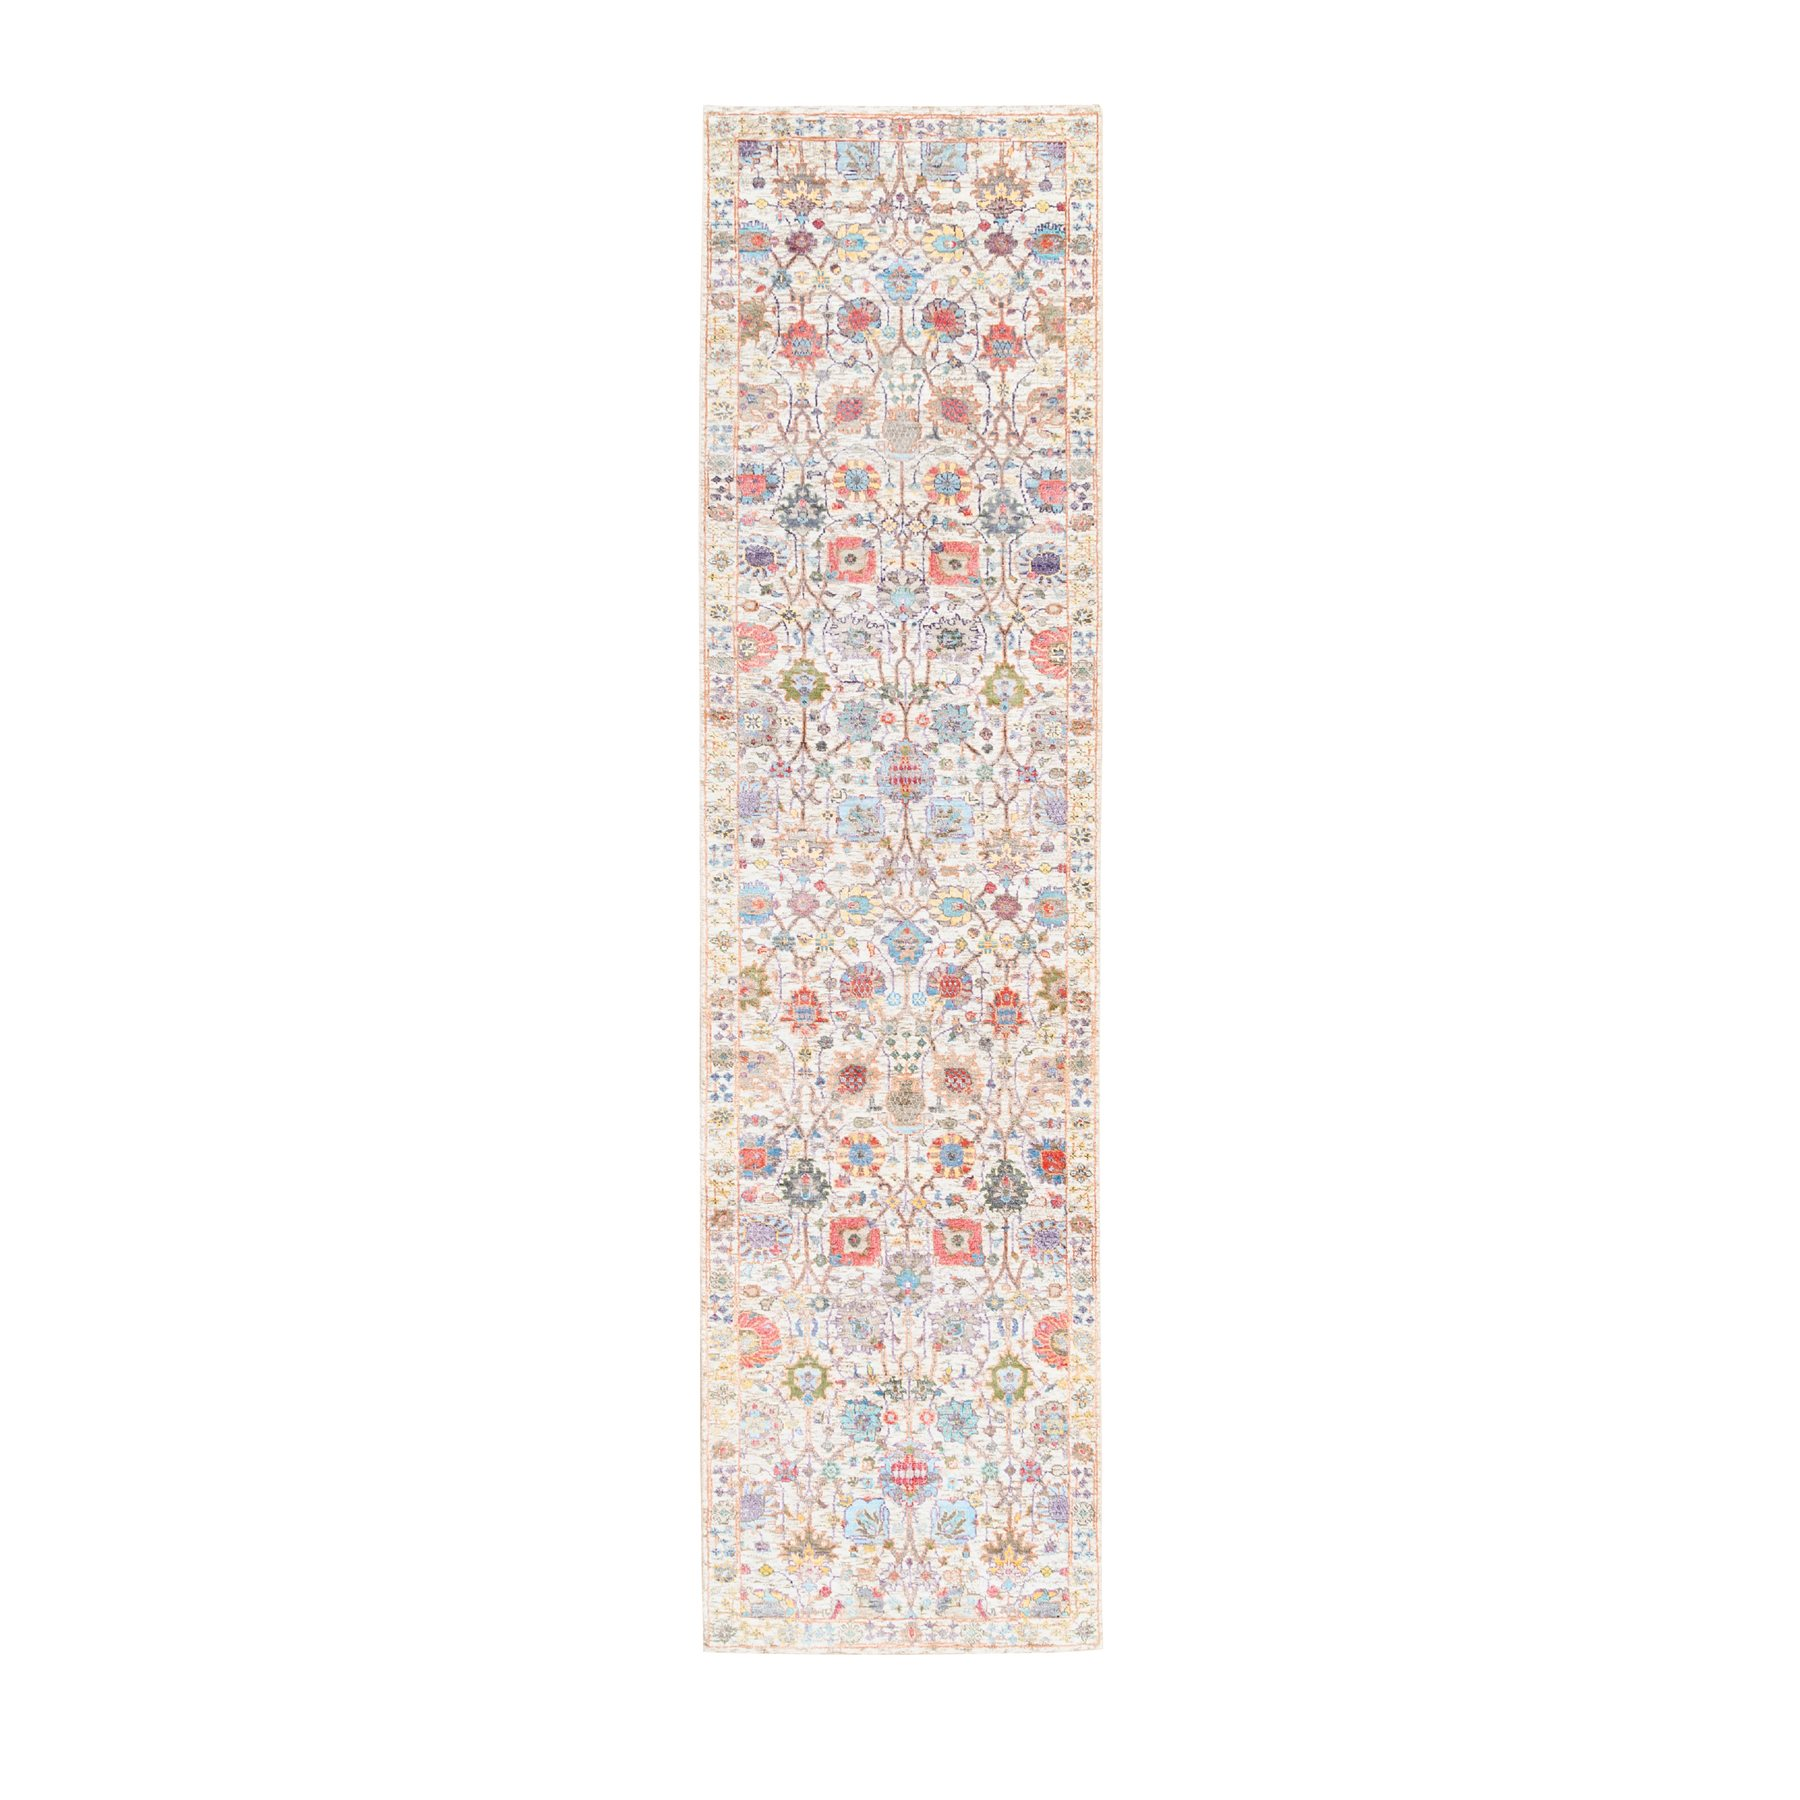 Transitional-Hand-Knotted-Rug-311450